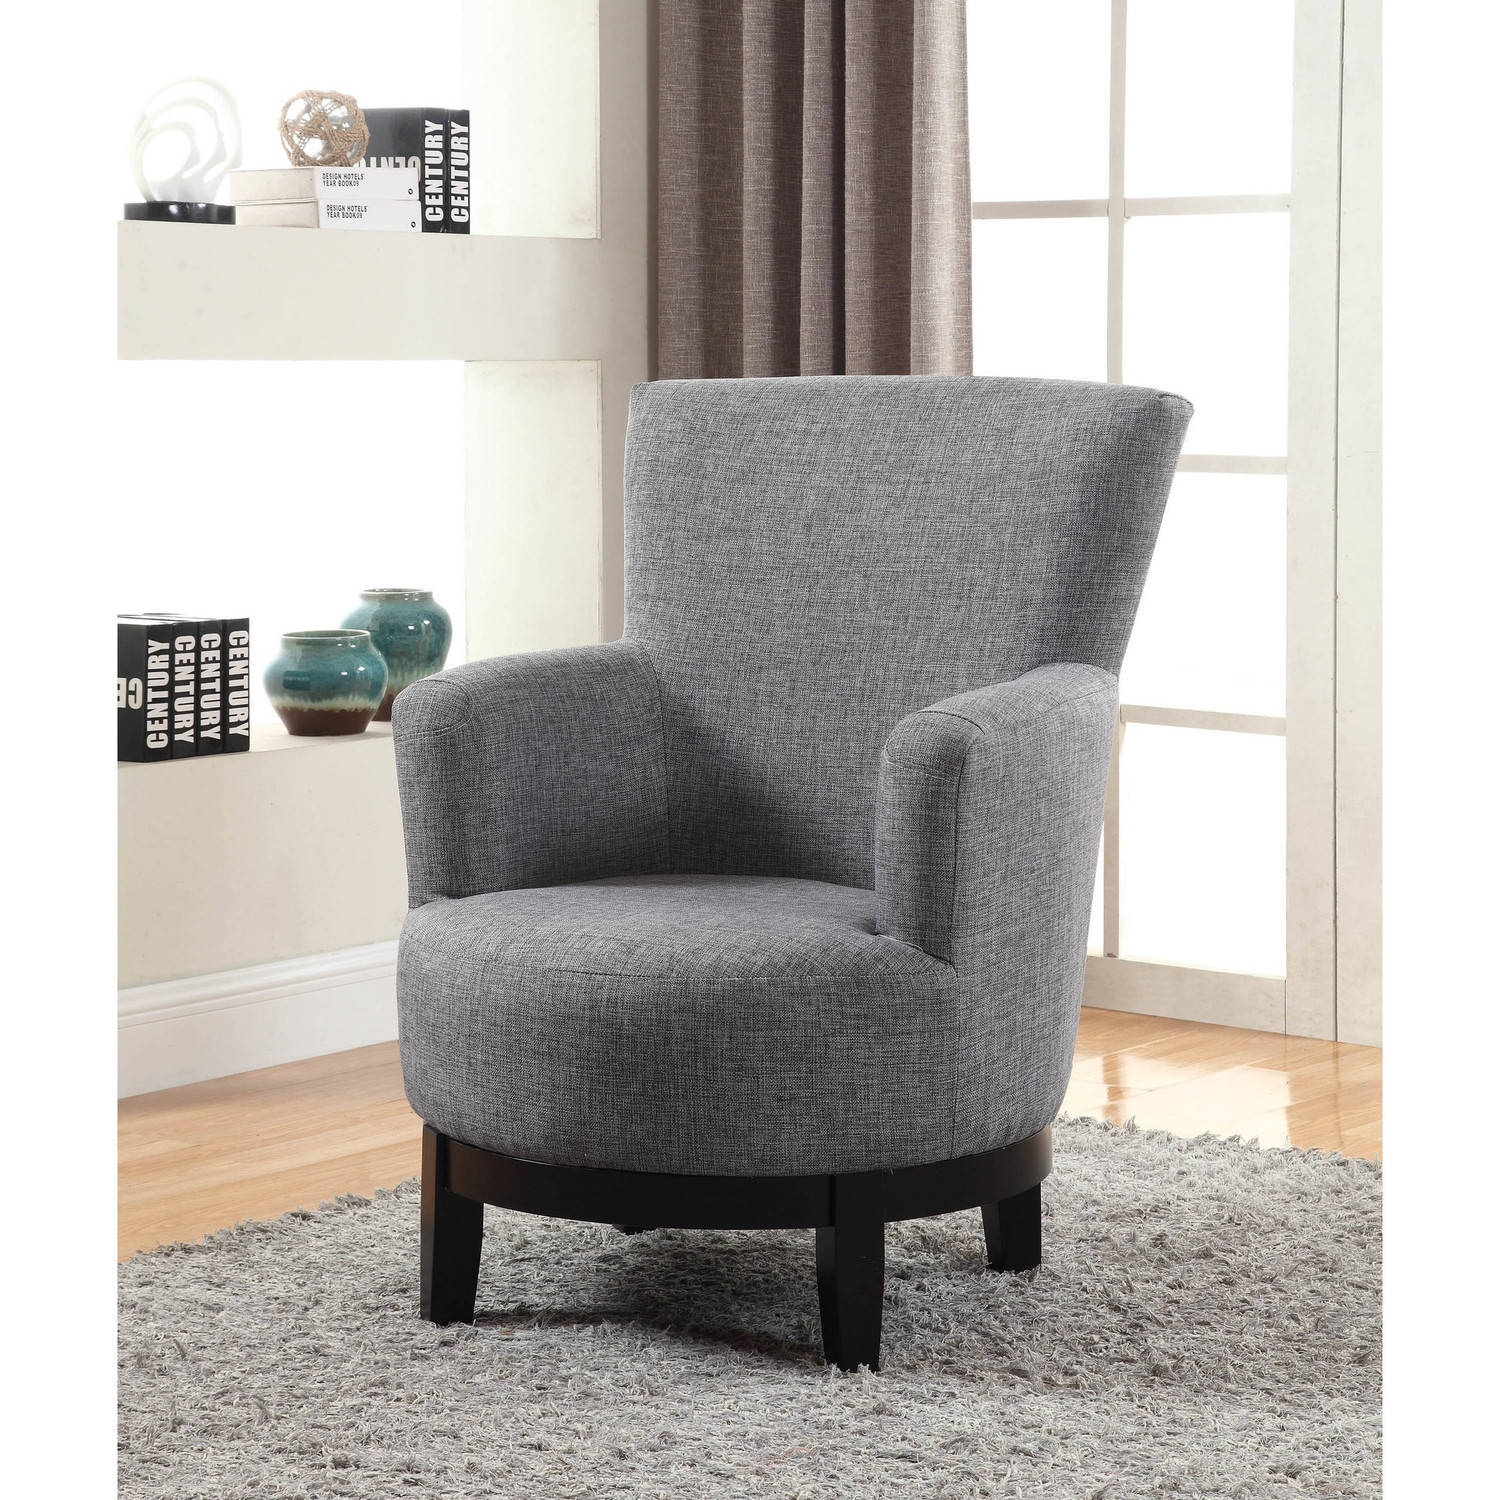 Nathaniel Home Dominic Swivel Accent Chair, Grey